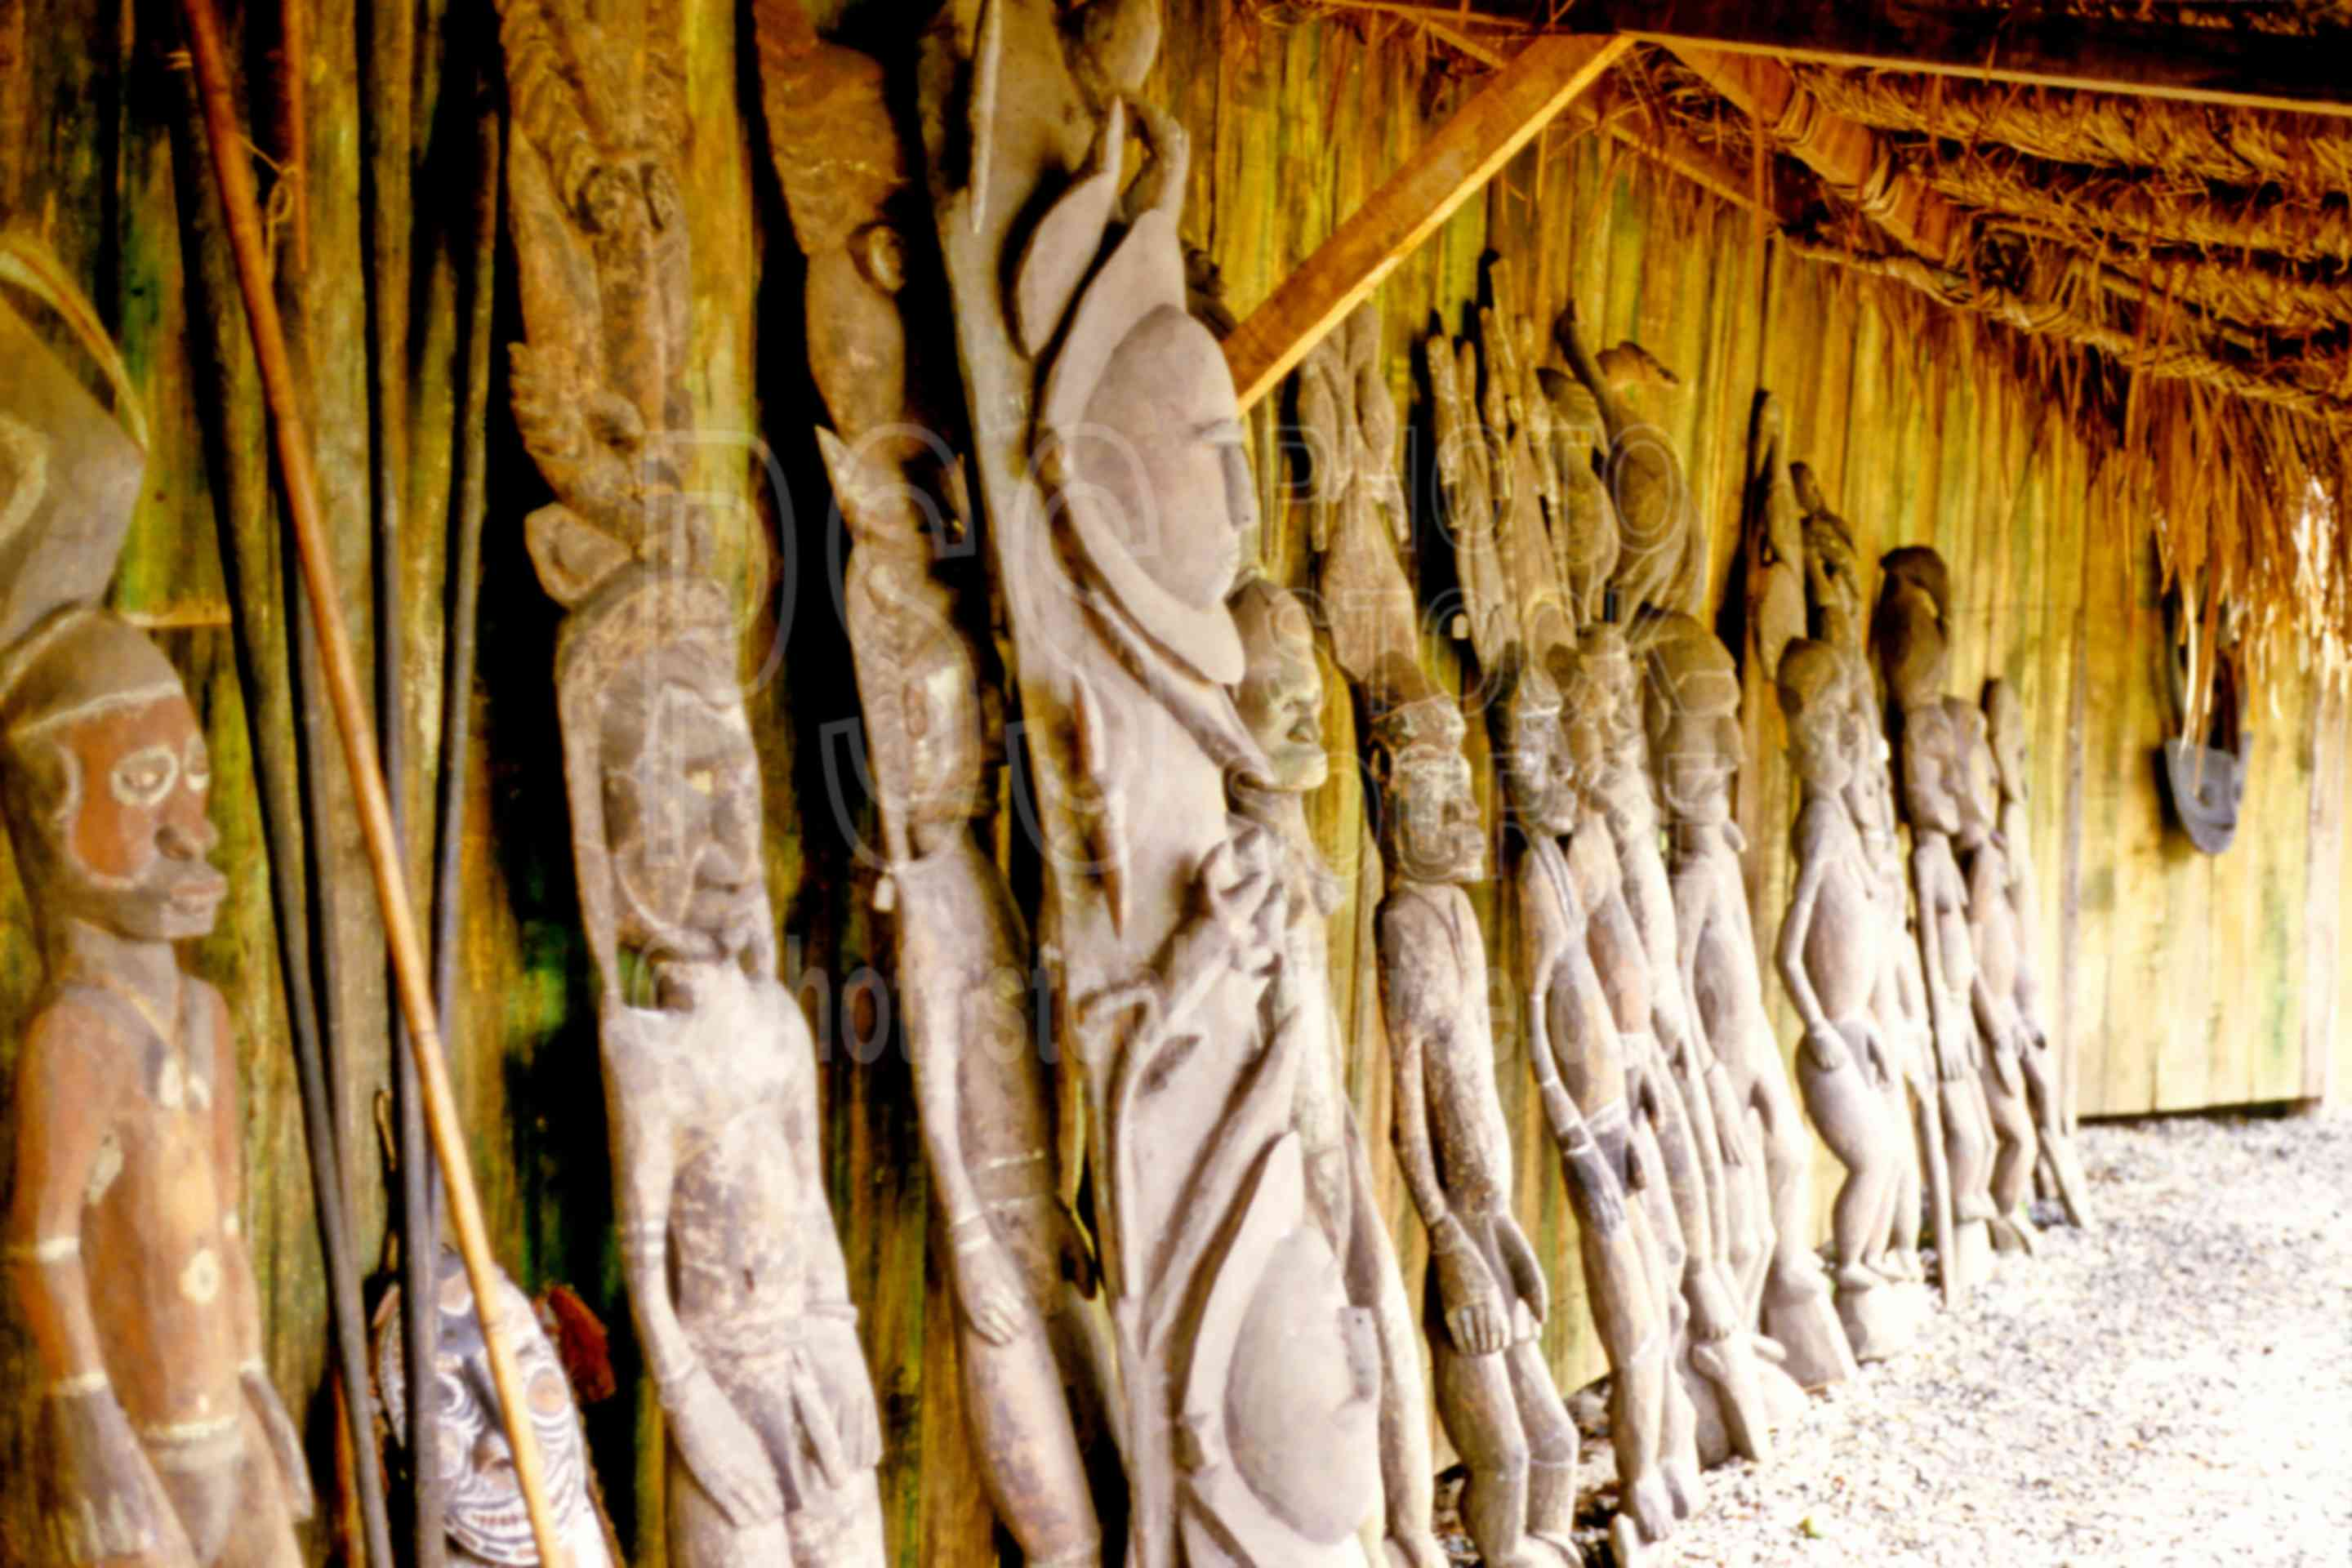 Carved artifacts on display,artifact,carving,primitive,wood,arts,png markets,sculptures